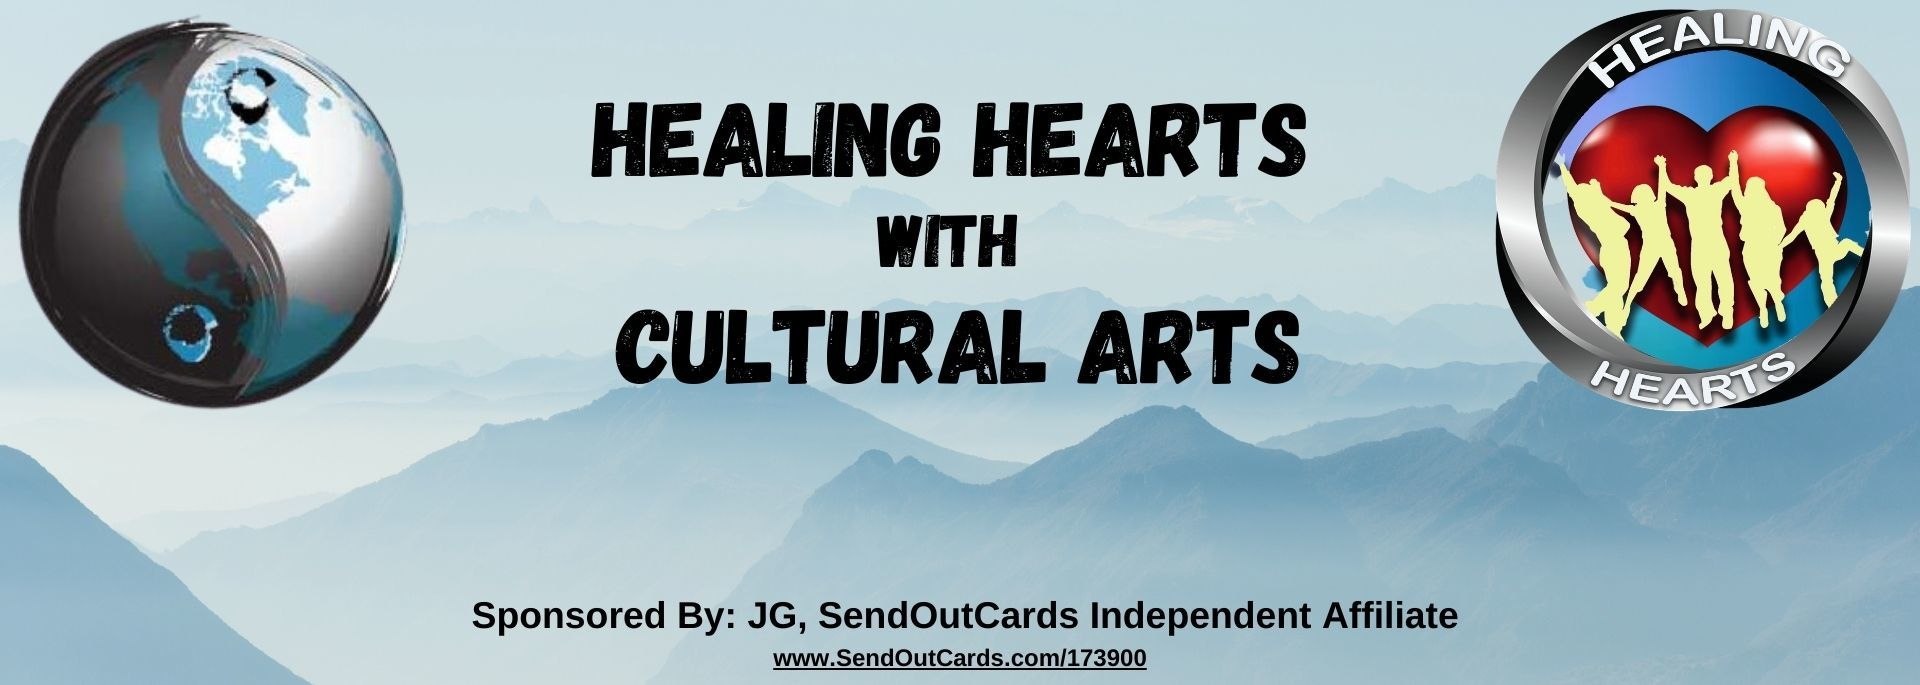 HEALING HEARTS WITH CULTURAL ARTS channel